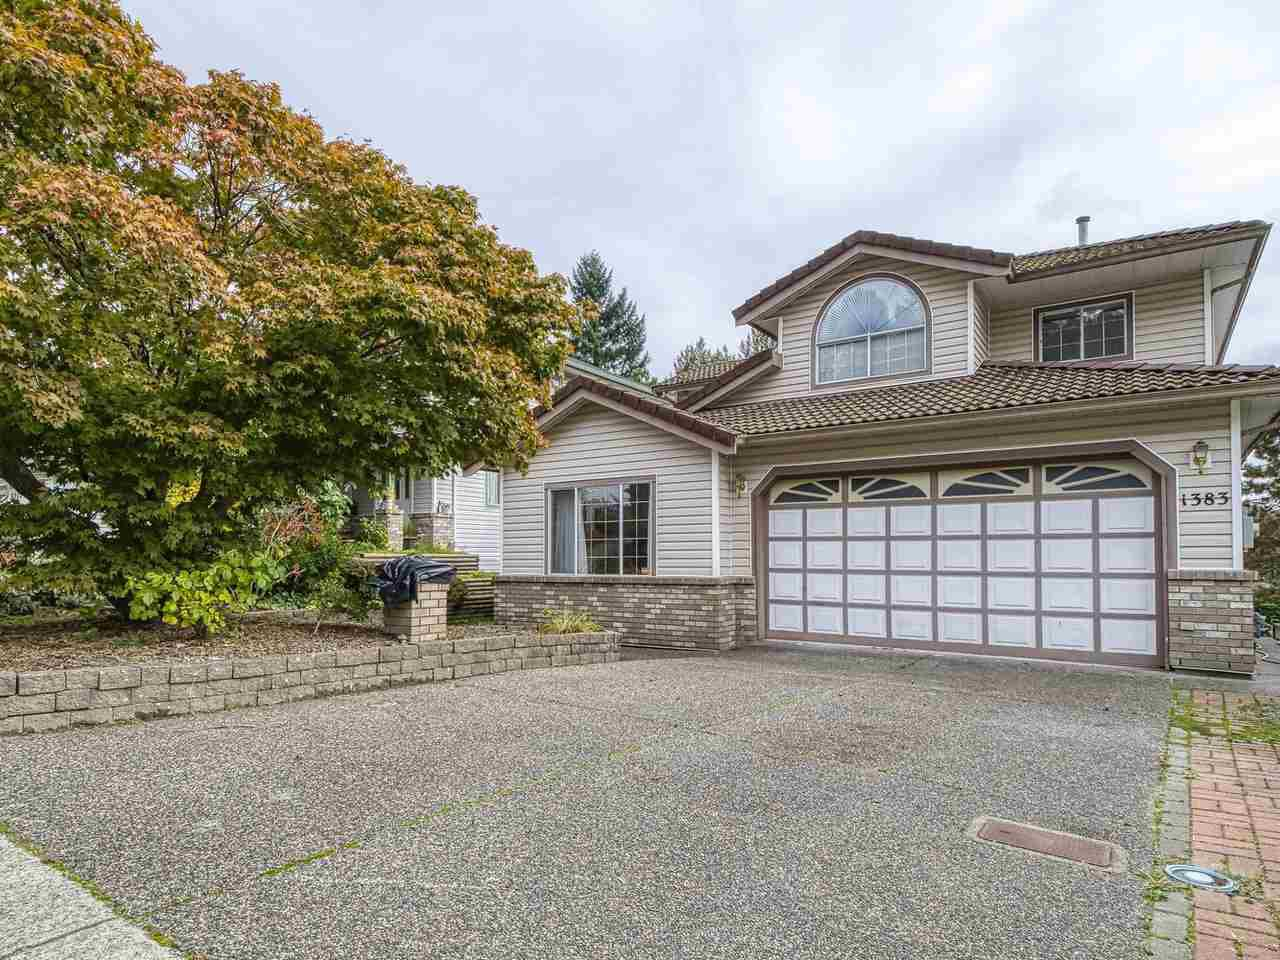 Main Photo: 1383 KENNEY STREET in Coquitlam: Westwood Plateau House for sale : MLS®# R2408876